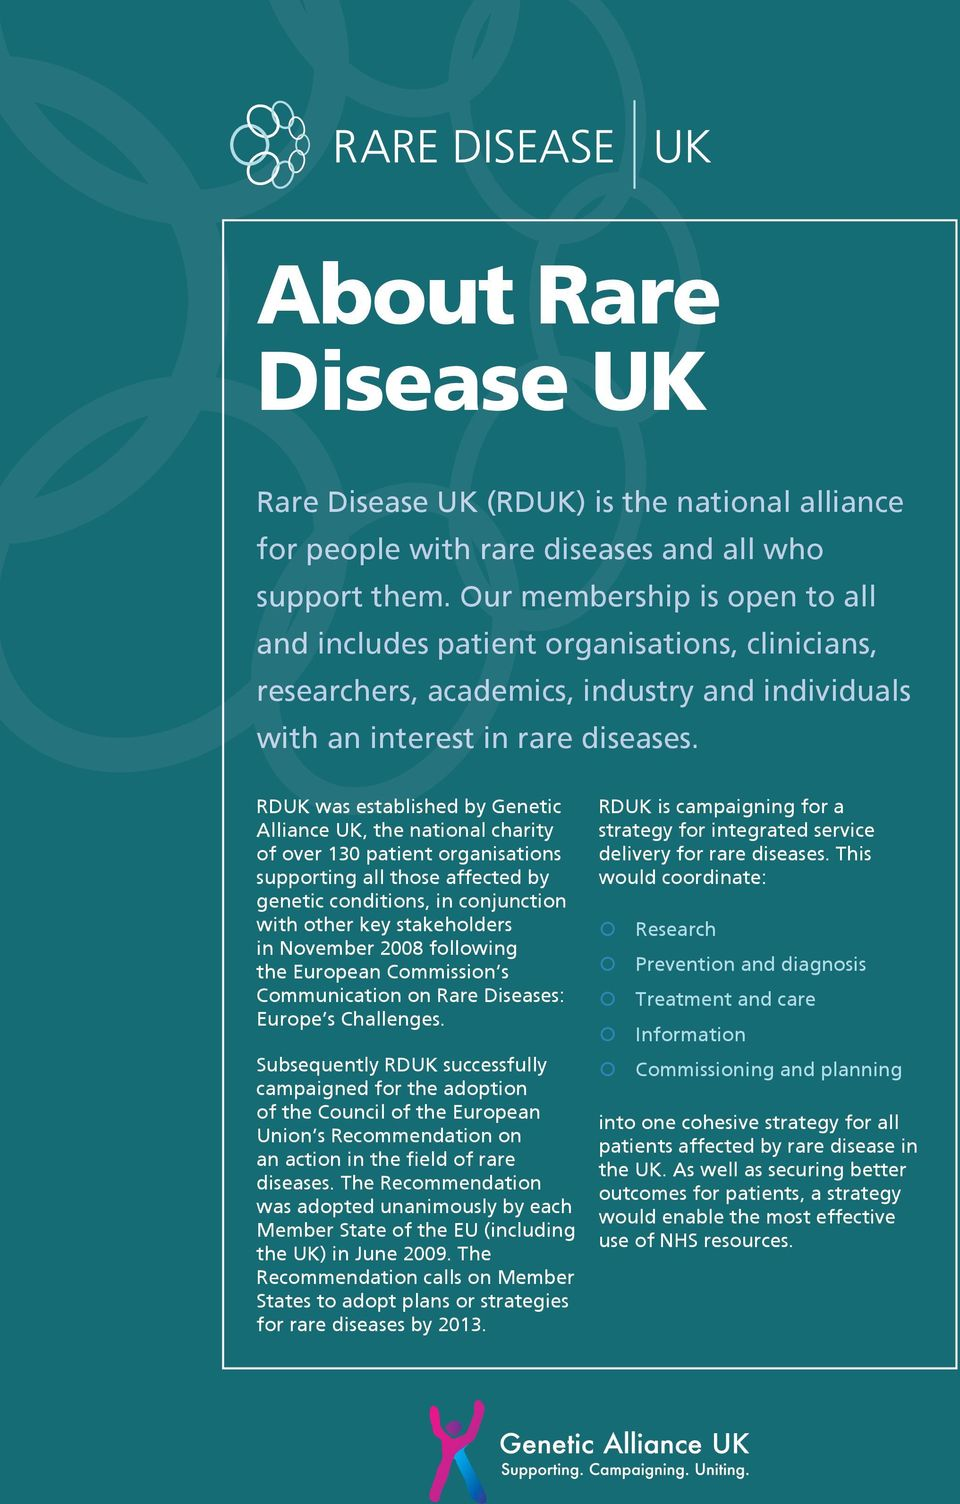 RDUK was established by Genetic Alliance UK, the national charity of over 130 patient organisations supporting all those affected by genetic conditions, in conjunction with other key stakeholders in